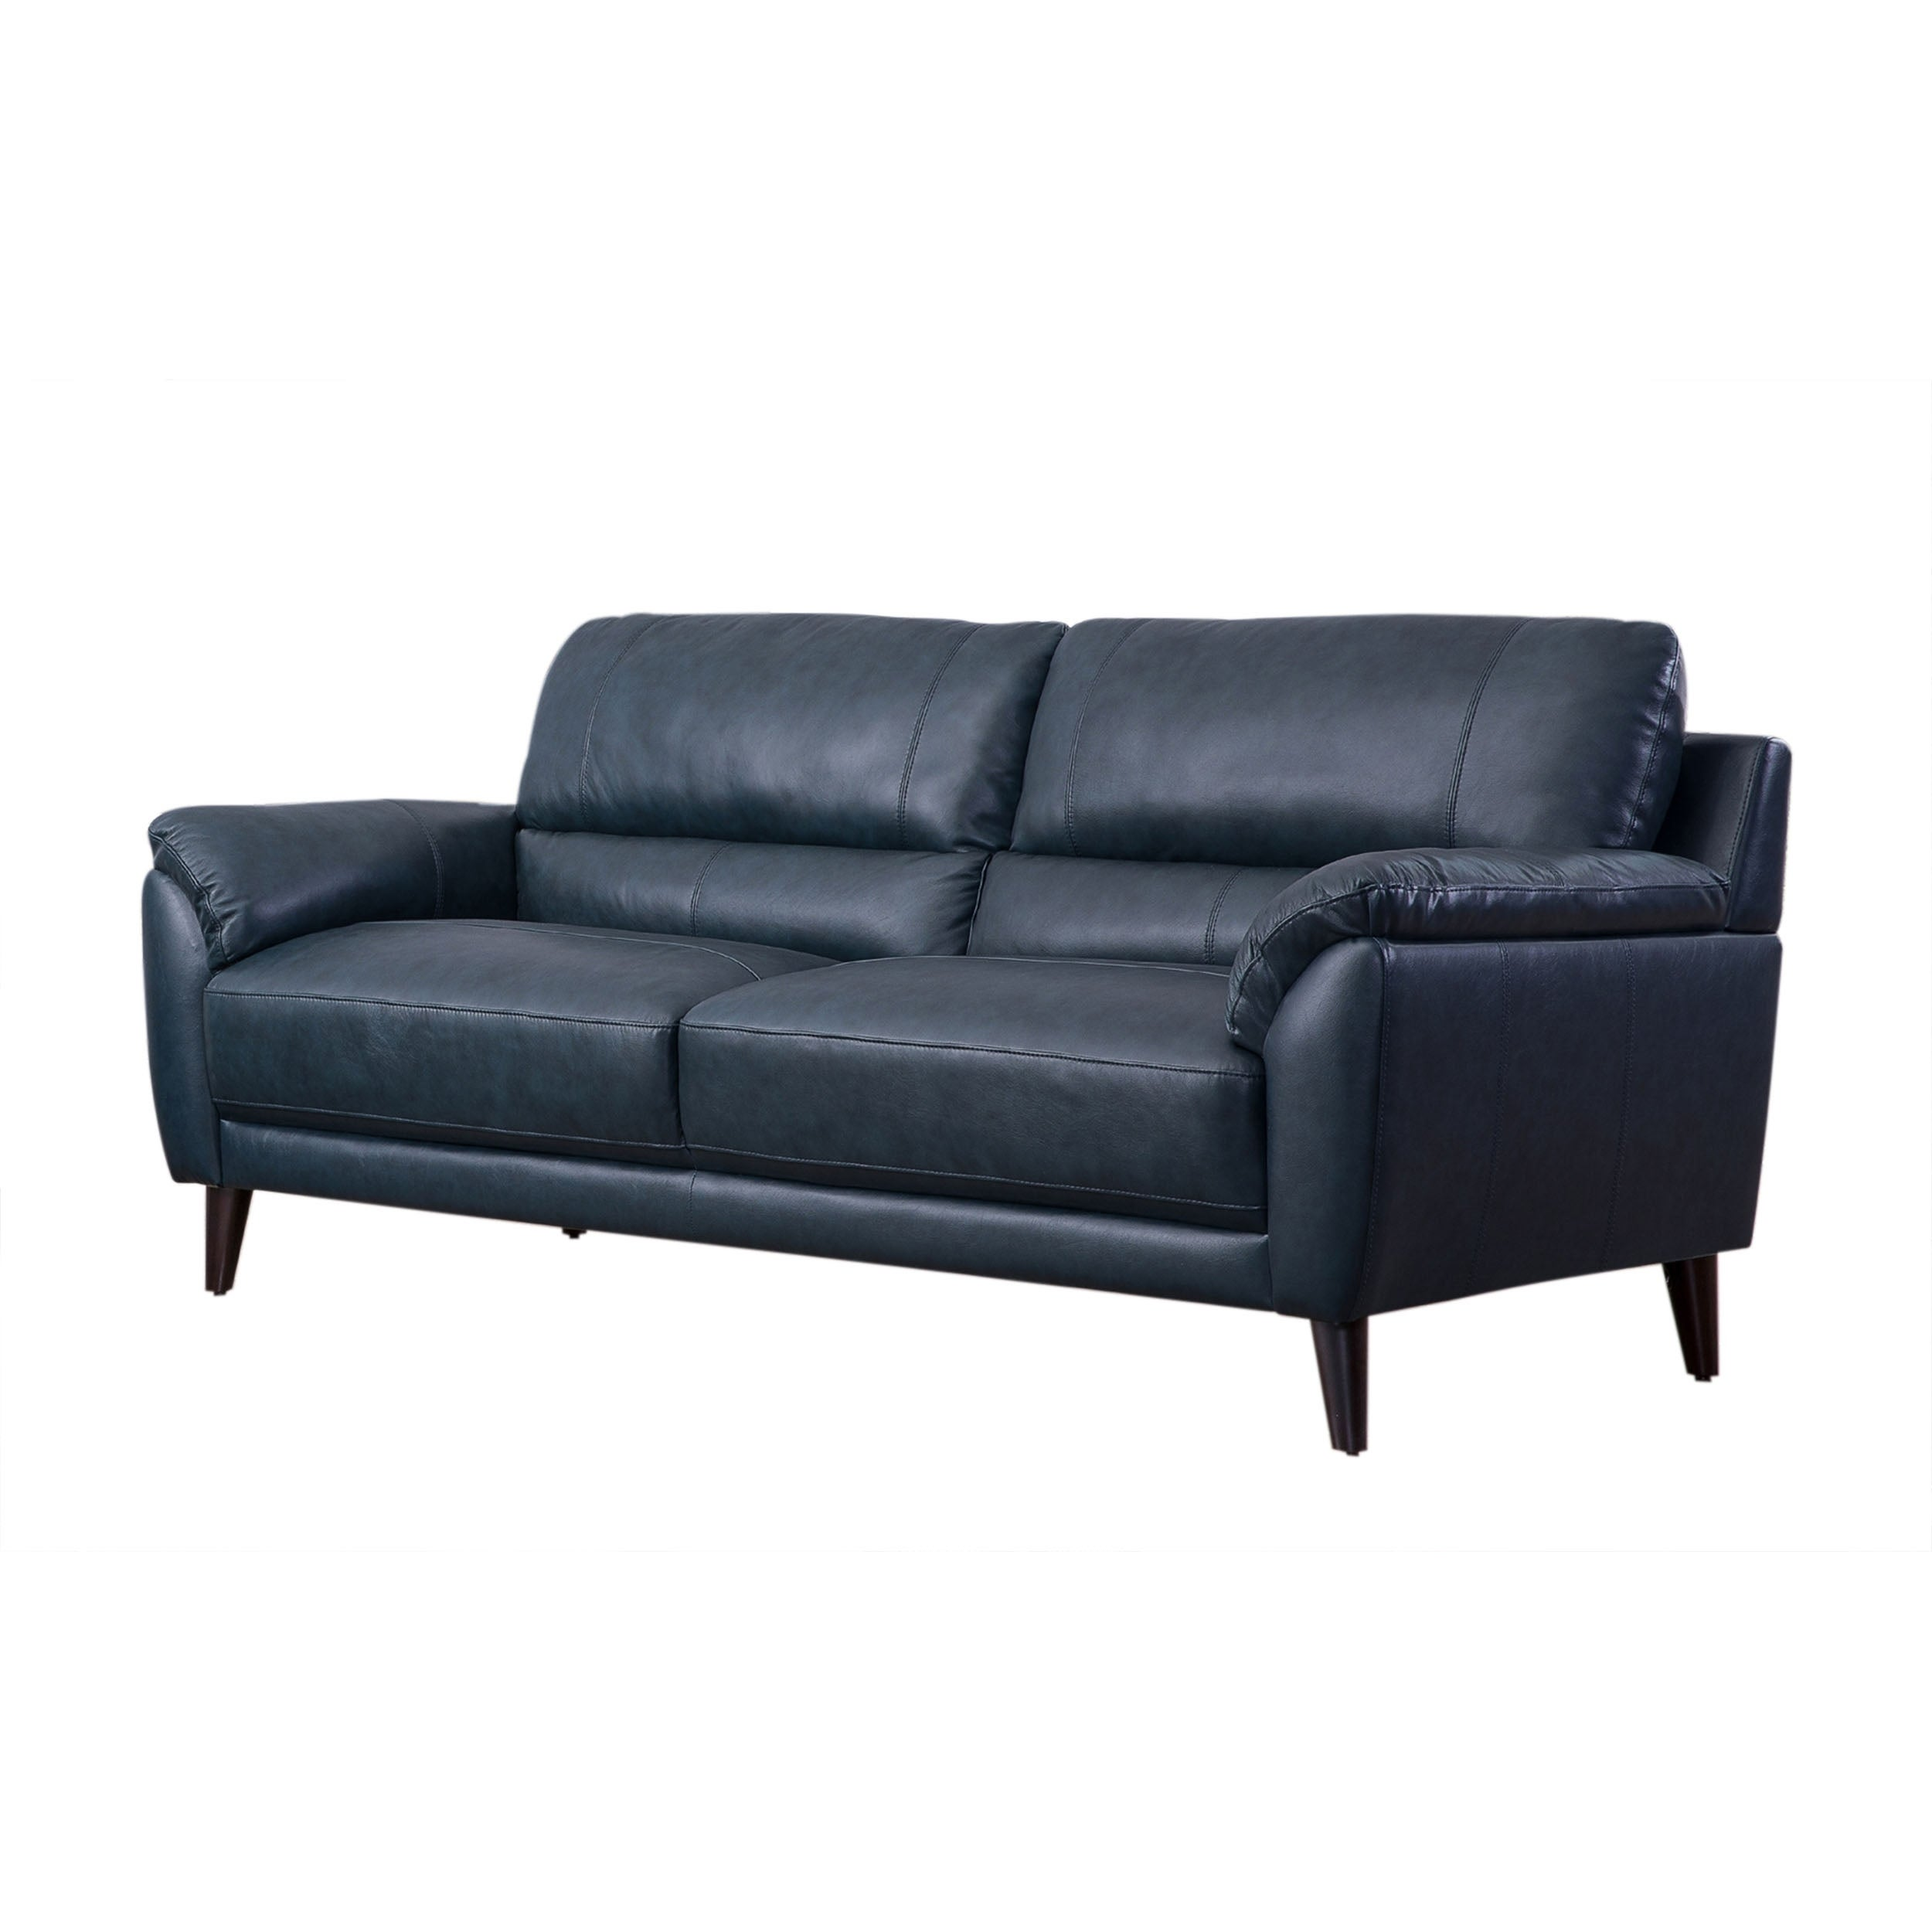 Shop Abbyson Colton Top Grain Leather Sofa   On Sale   Free Shipping Today    Overstock   27649576